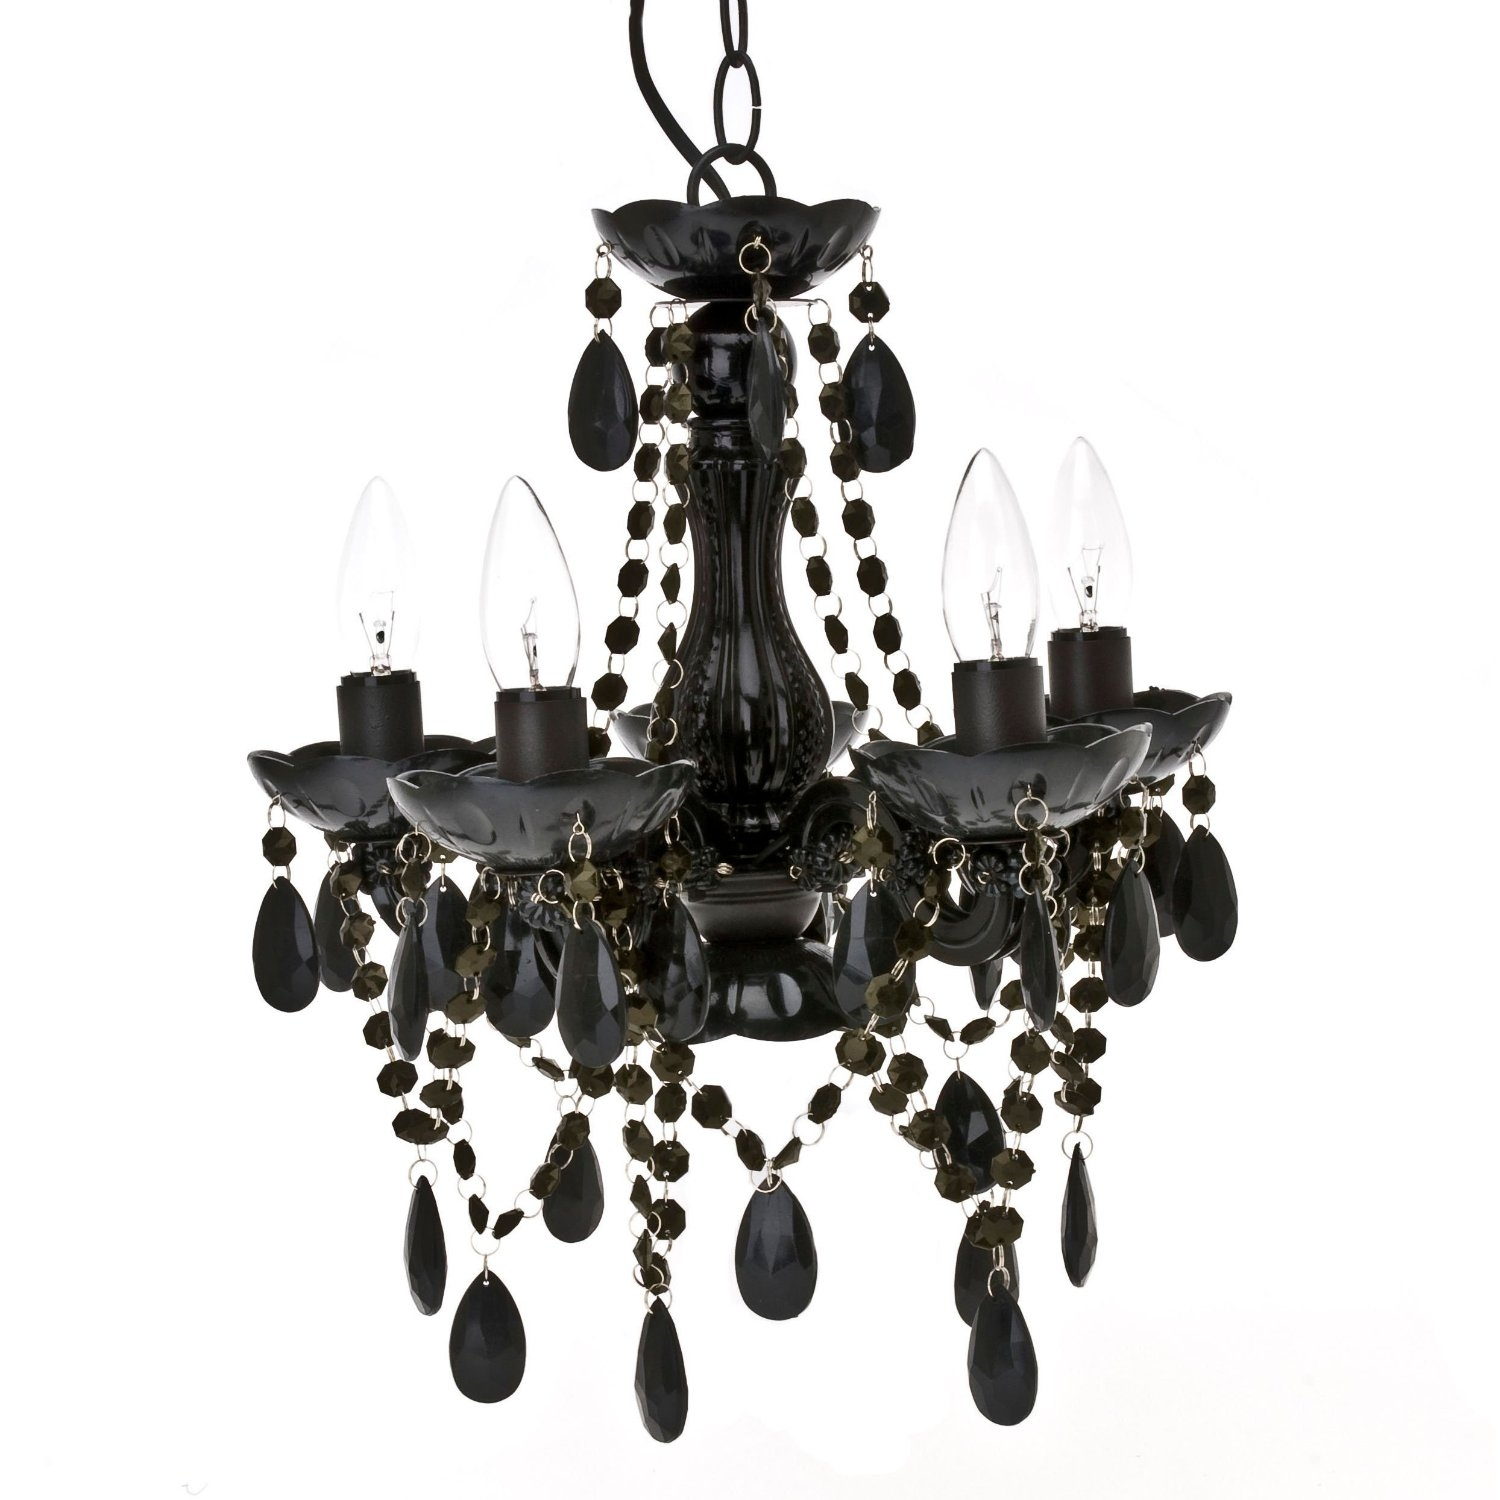 Black Chandeliers For Every Home Designinyou For Black Chandeliers (Image 6 of 15)